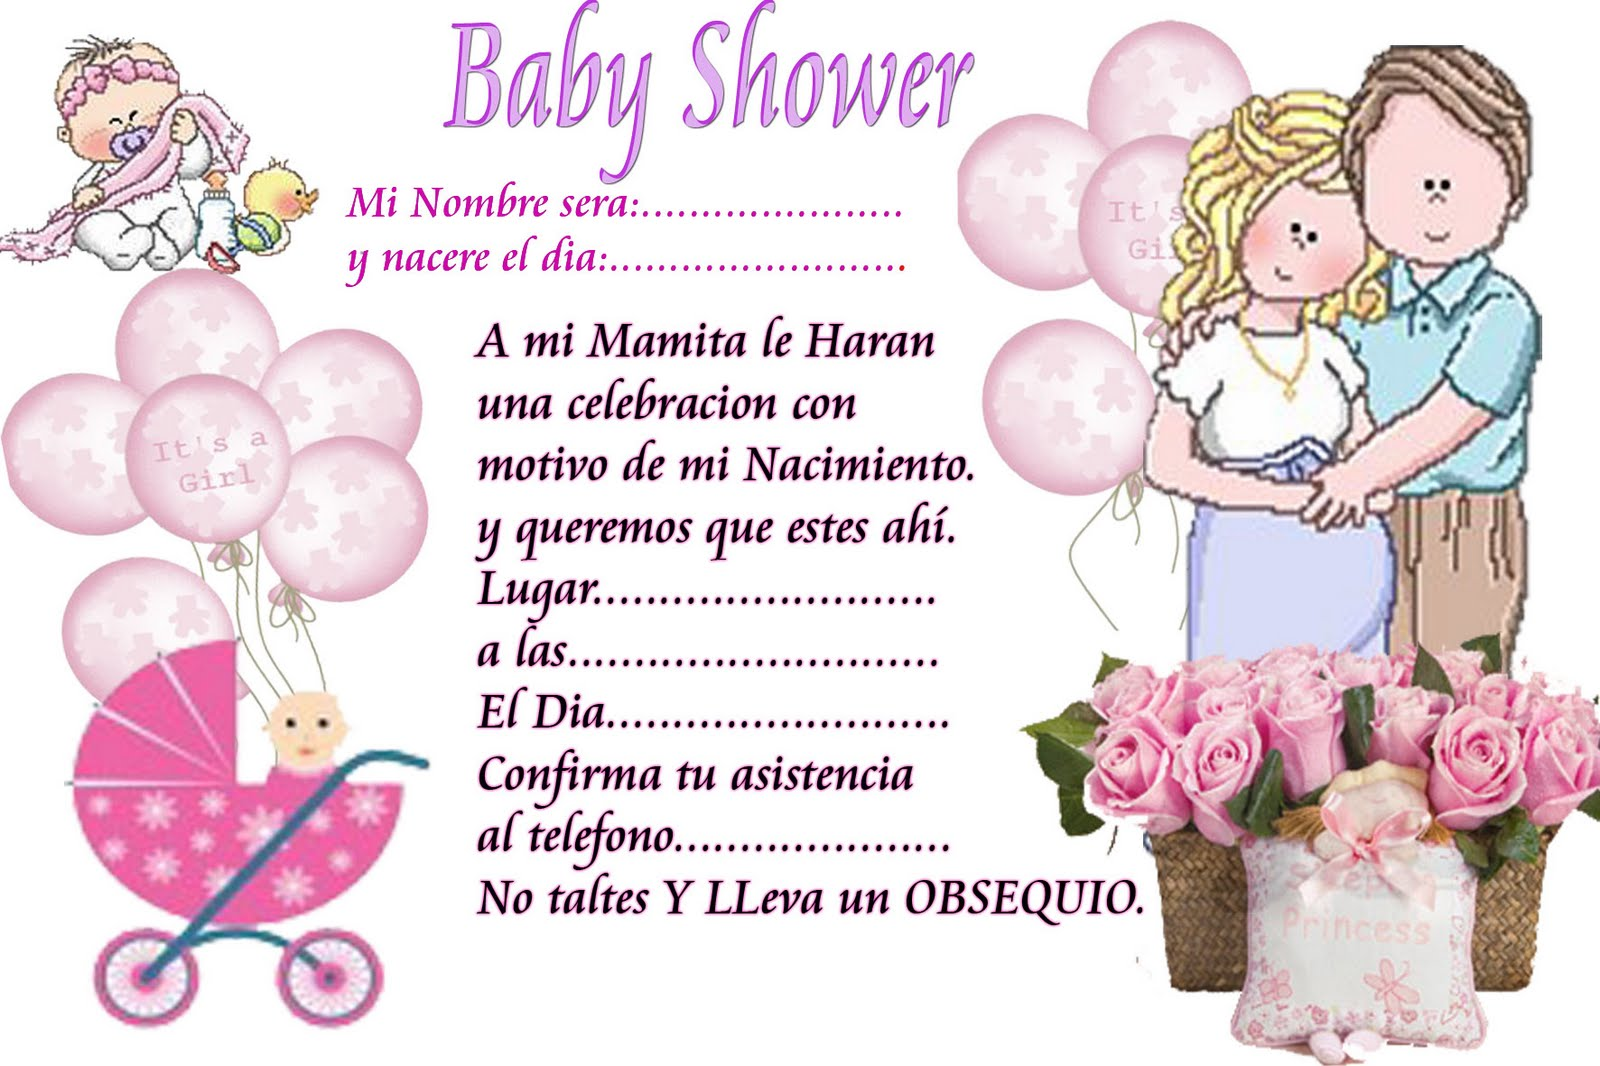 Decoracion Baby Shower Para Imprimir ~ MANUALIDADES INVITACIONES DE BABY SHOWER